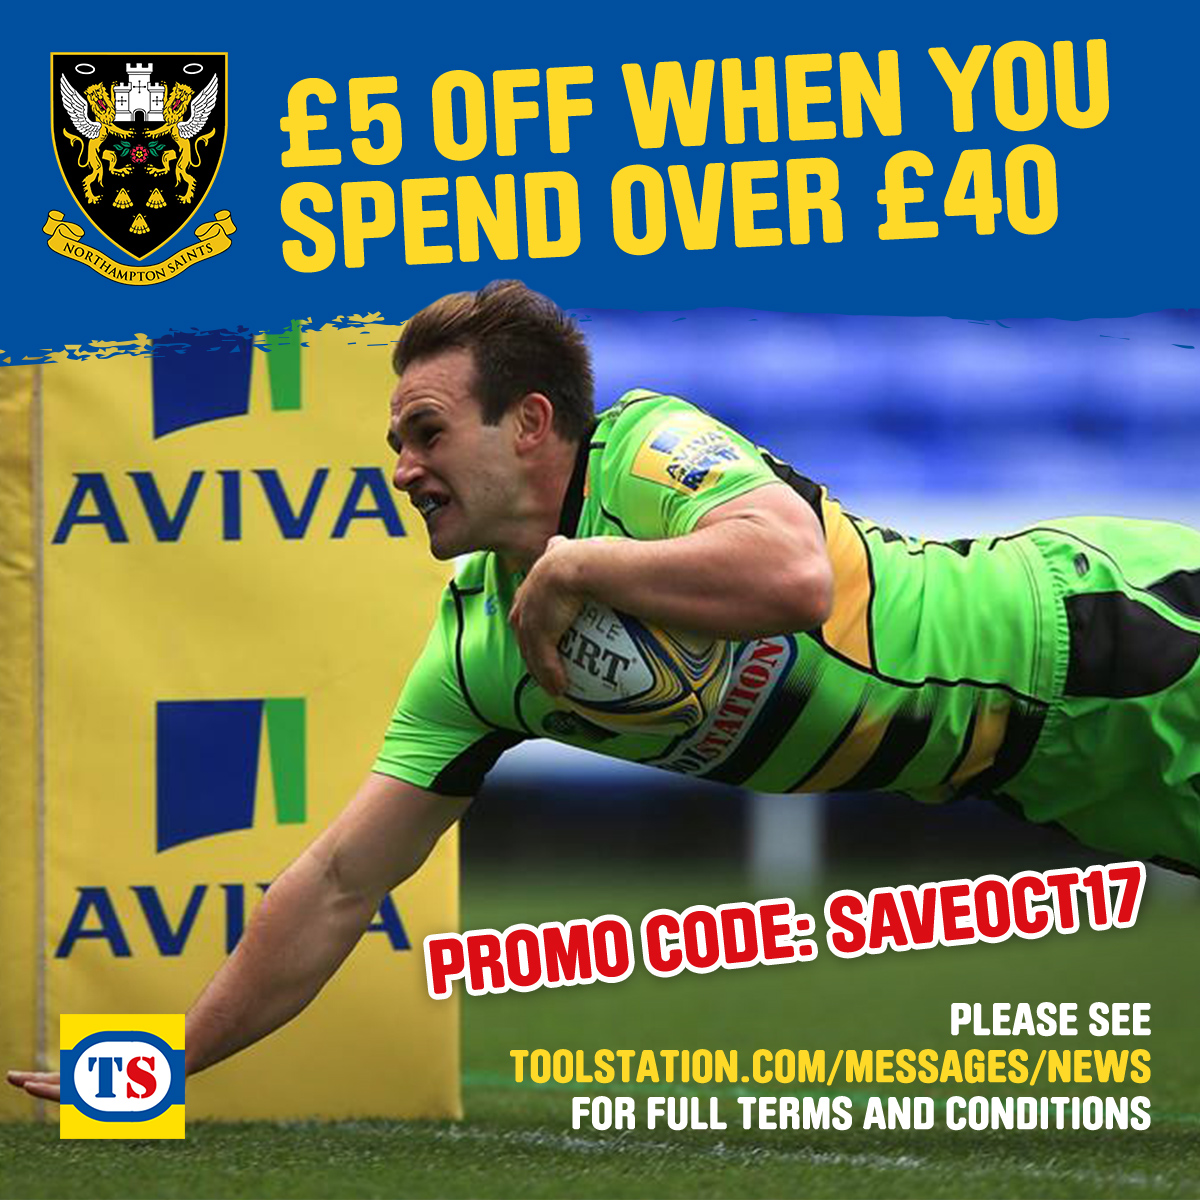 October Northampton Saints Voucher Terms & Conditions